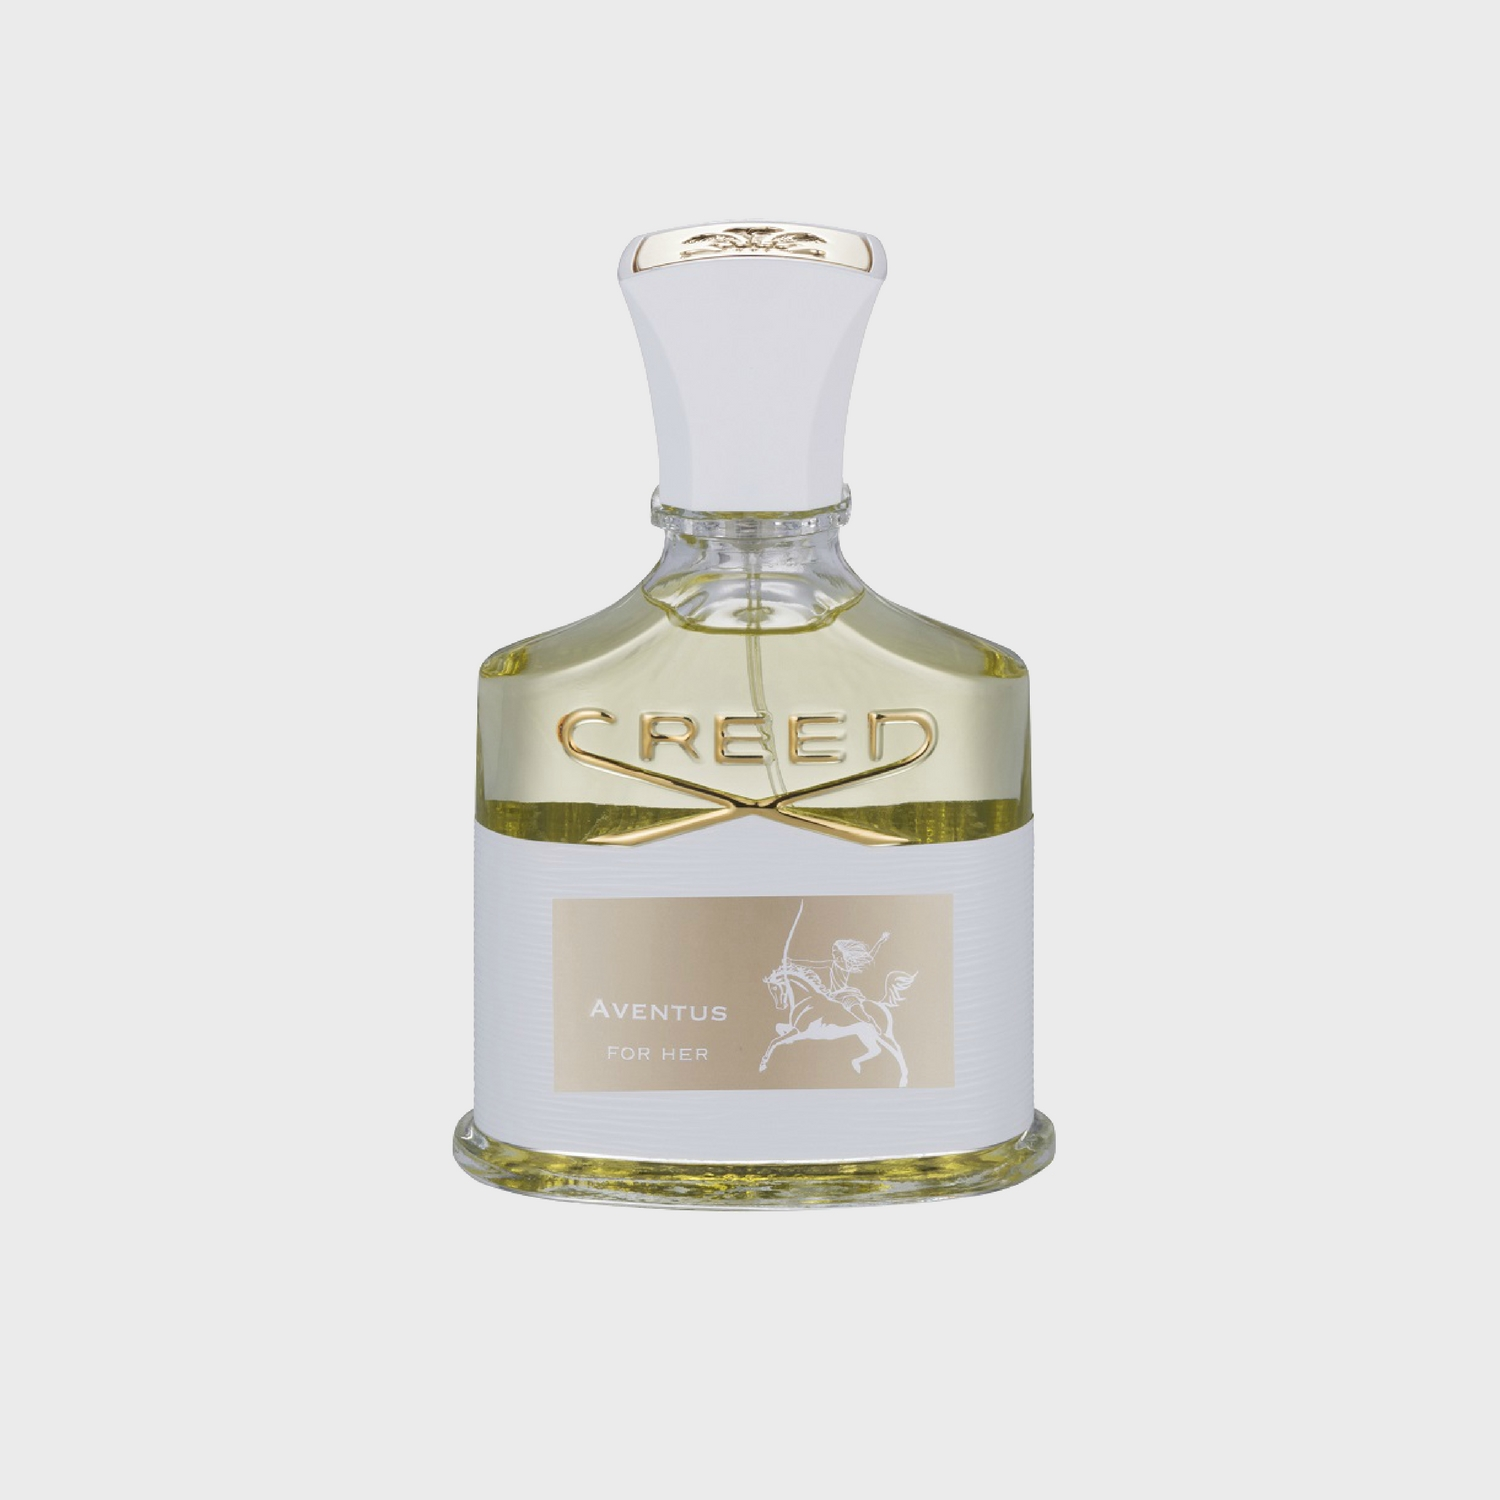 Creed Aventus For Her | Creed Perfume Review